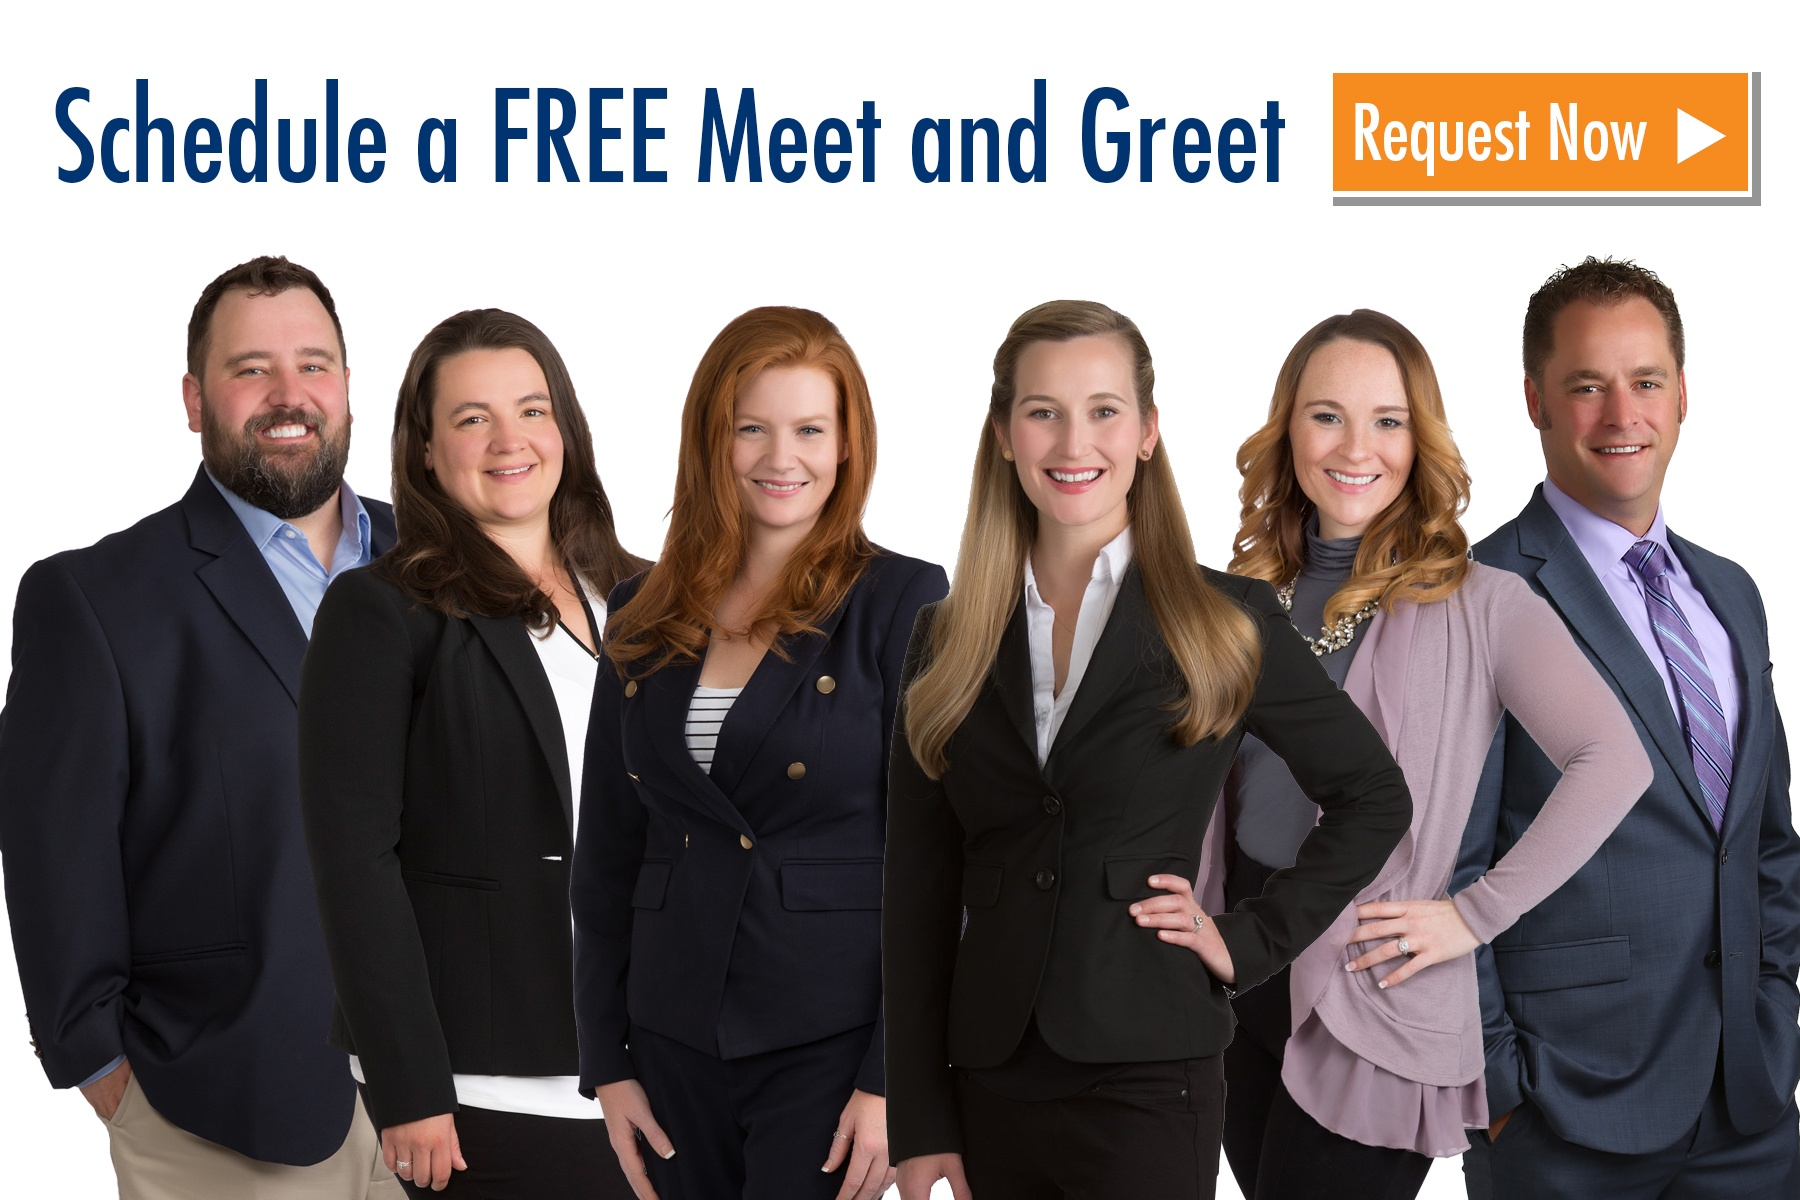 Schedule a FREE Meet & Greet with a Doctor